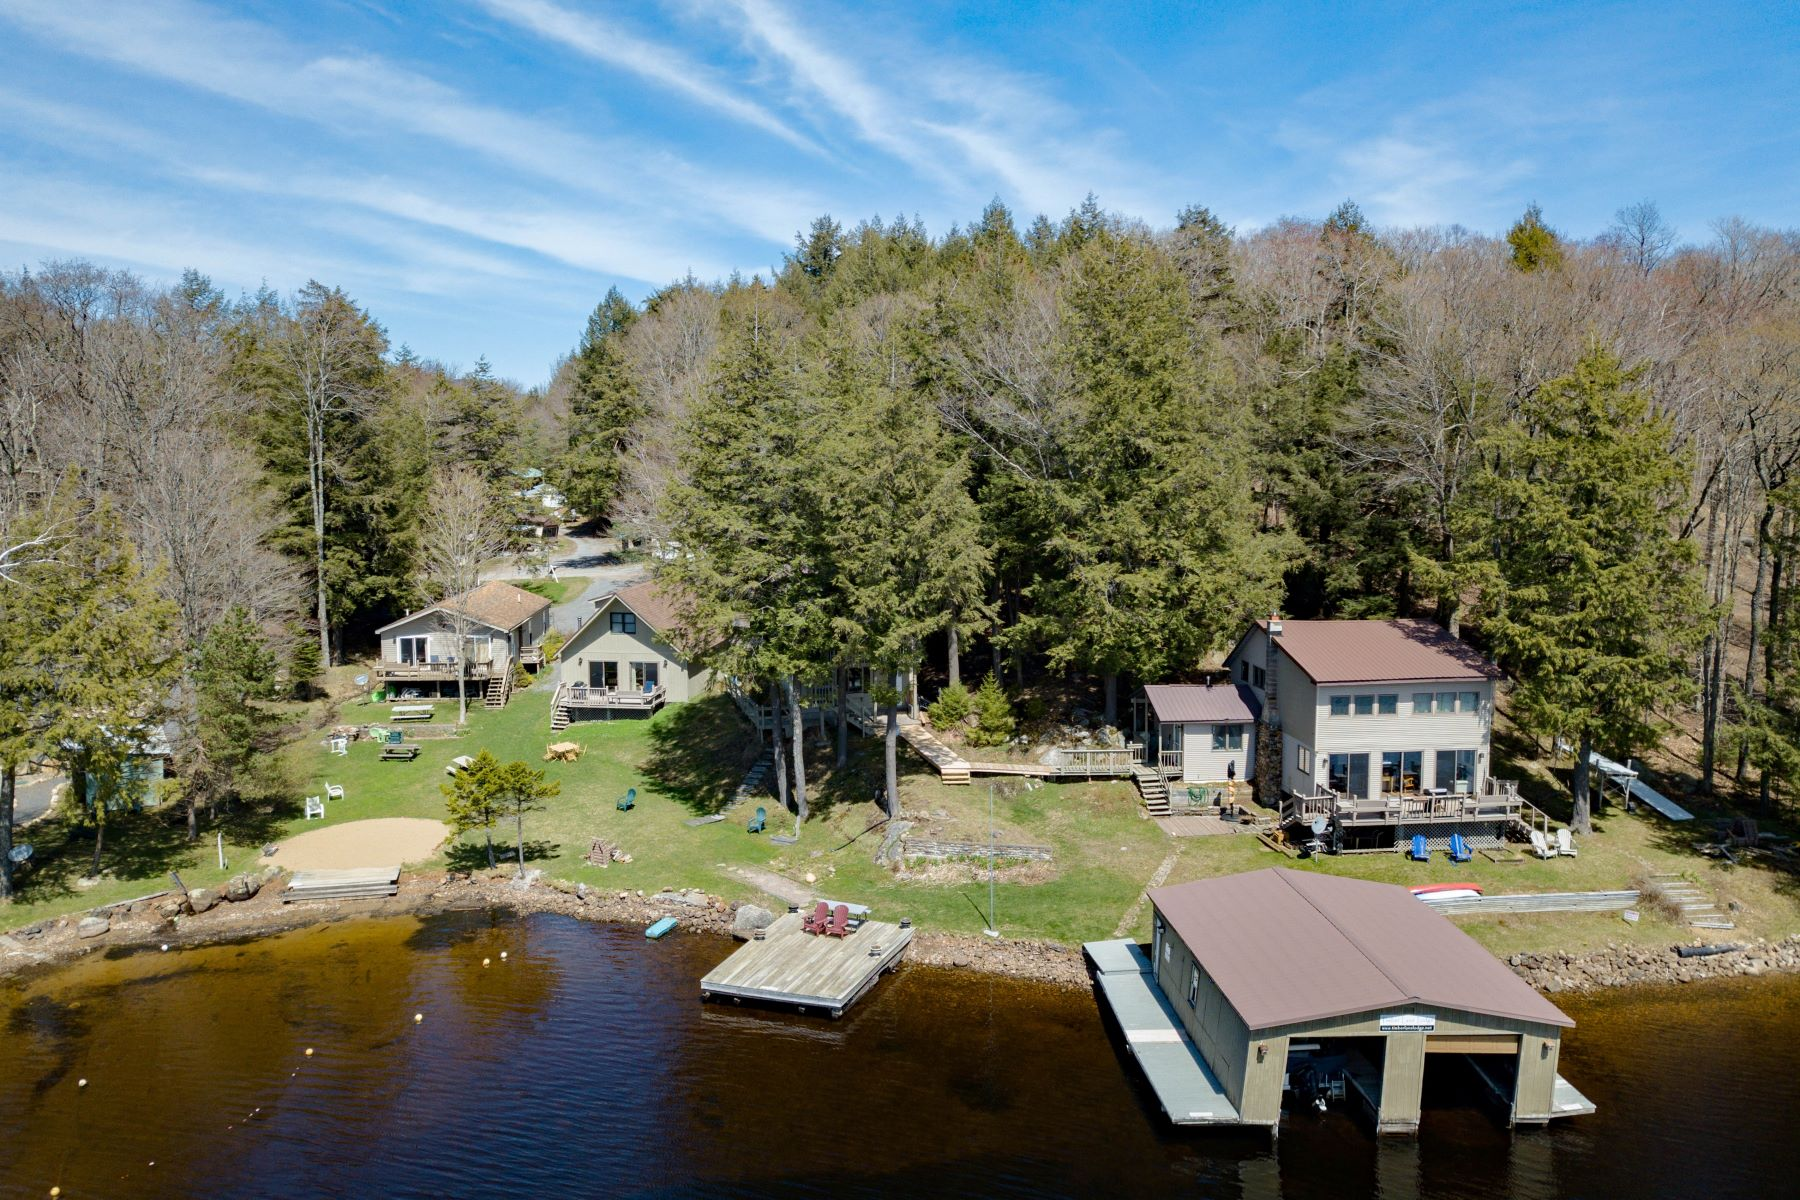 Moradia Multi-familiar para Arrendamento às Multi Family Lakefront Living 251 Petrie Road Old Forge, Nova York 13420 Estados Unidos